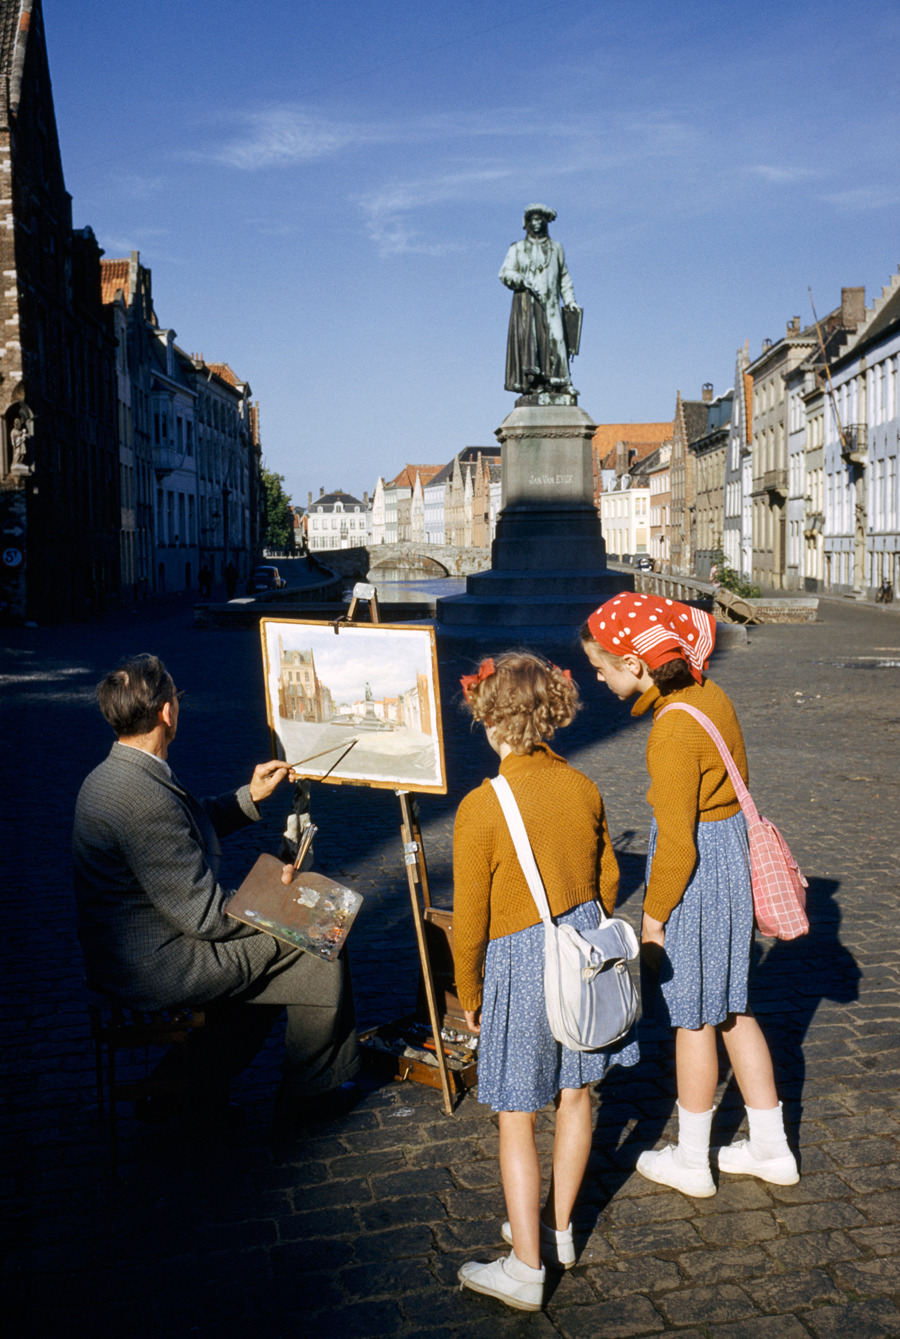 sews:      natgeofound:  Girls watch artist painting picture of statue of Flemish artist in Bruges, Belgium, May 1955.Photograph by Luis Marden, National Geographic